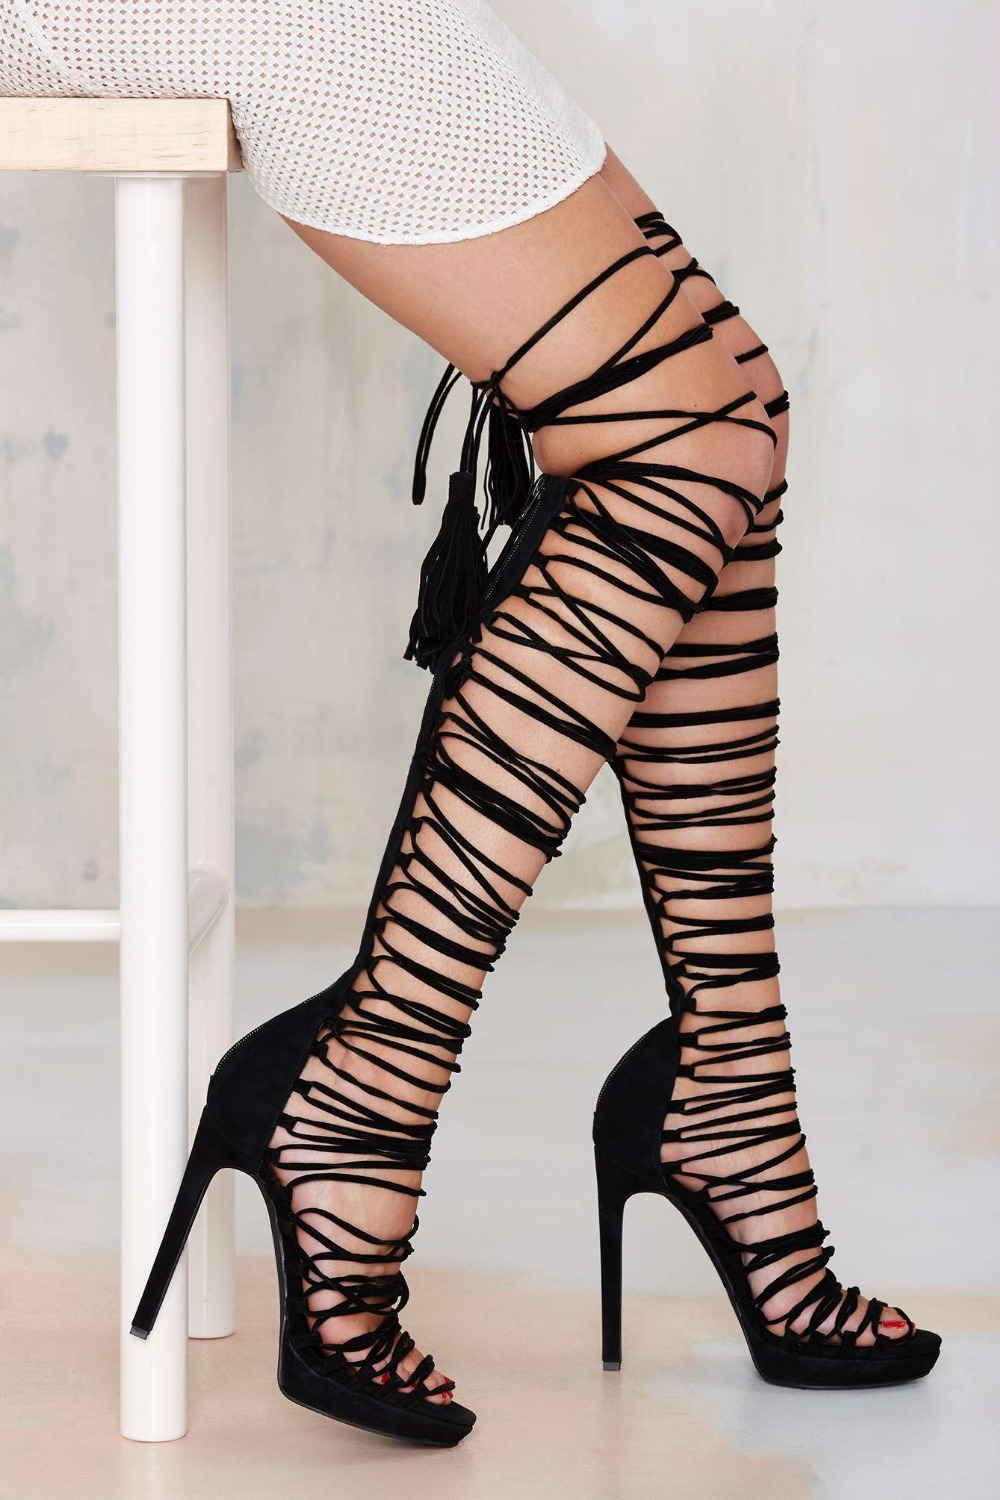 Gladiator Lace Up Heels - Is Heel